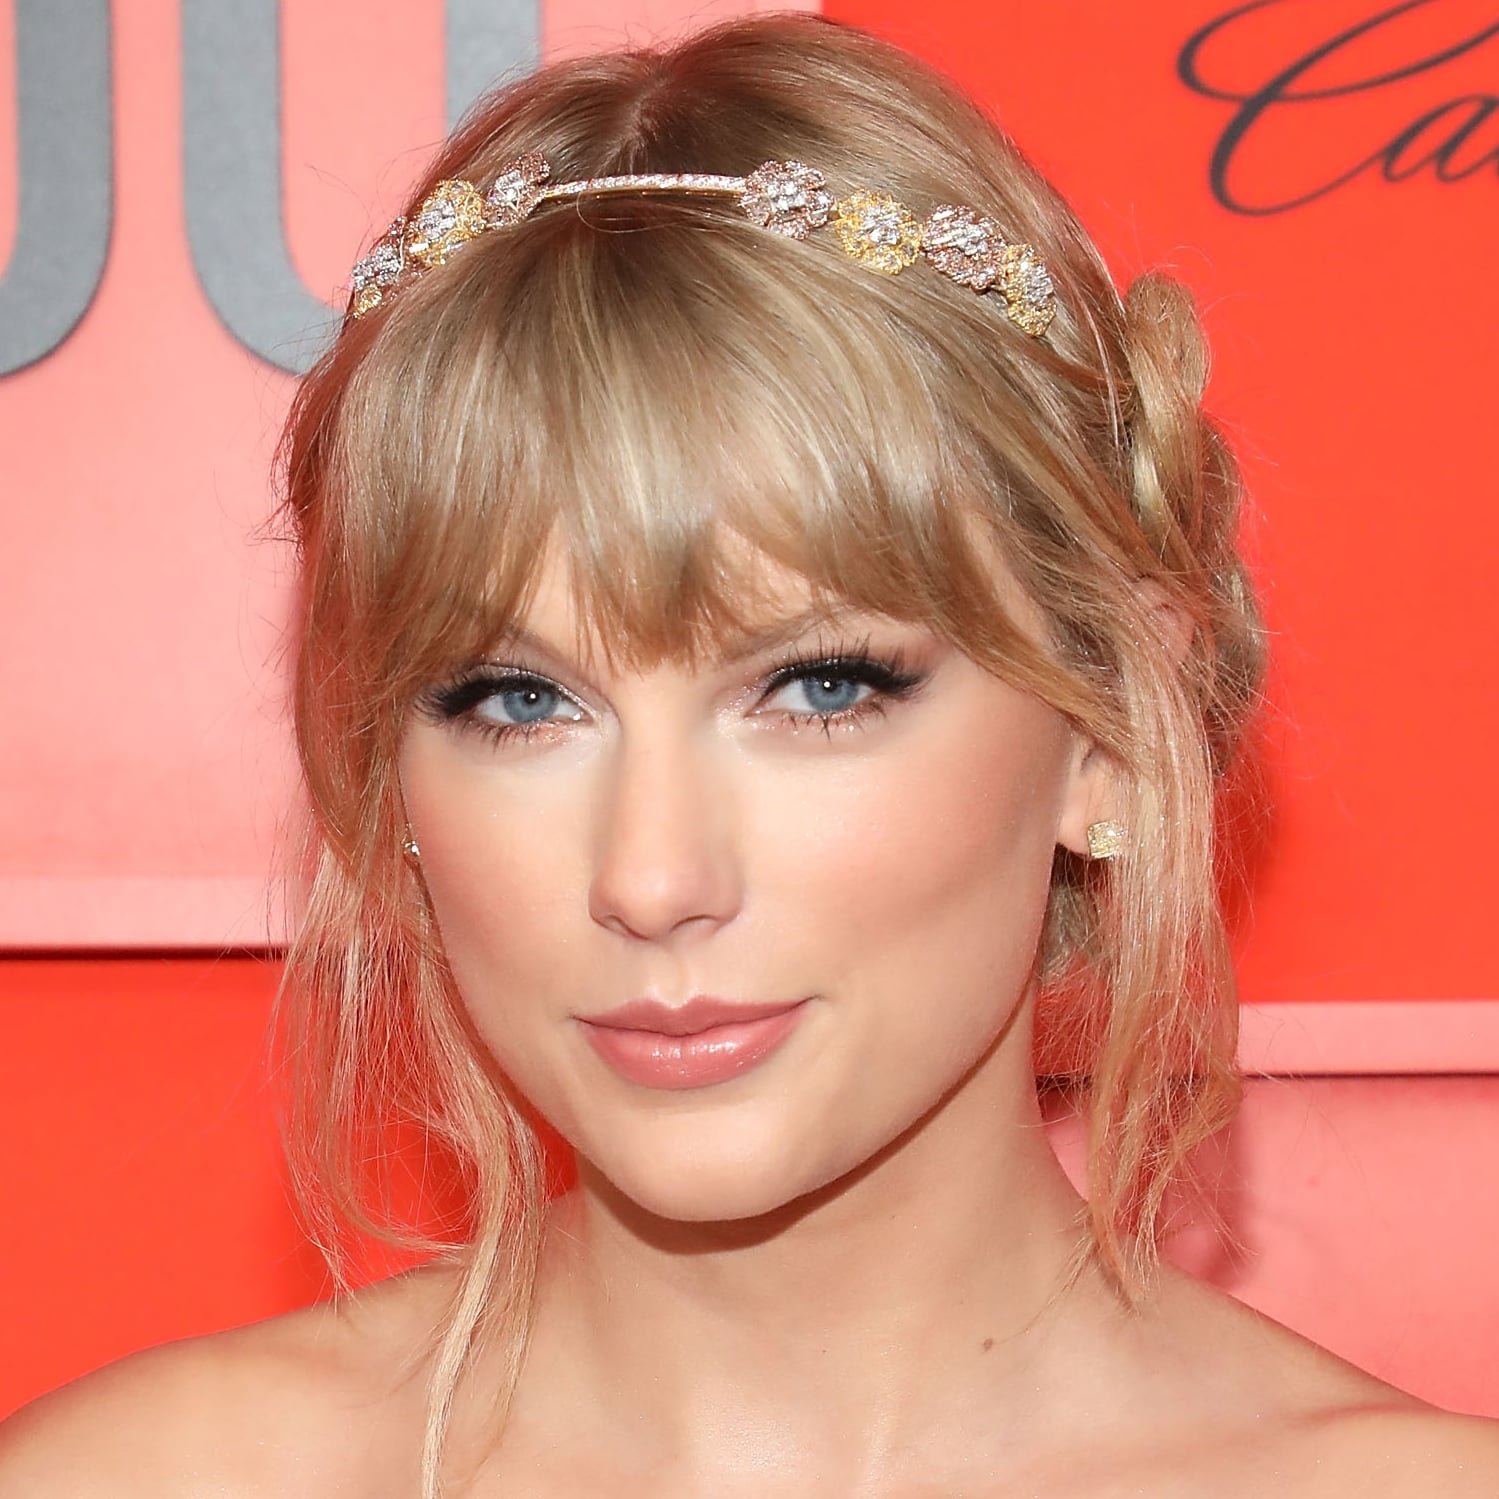 Taylor Swift Free! fans celebrate for an important reason